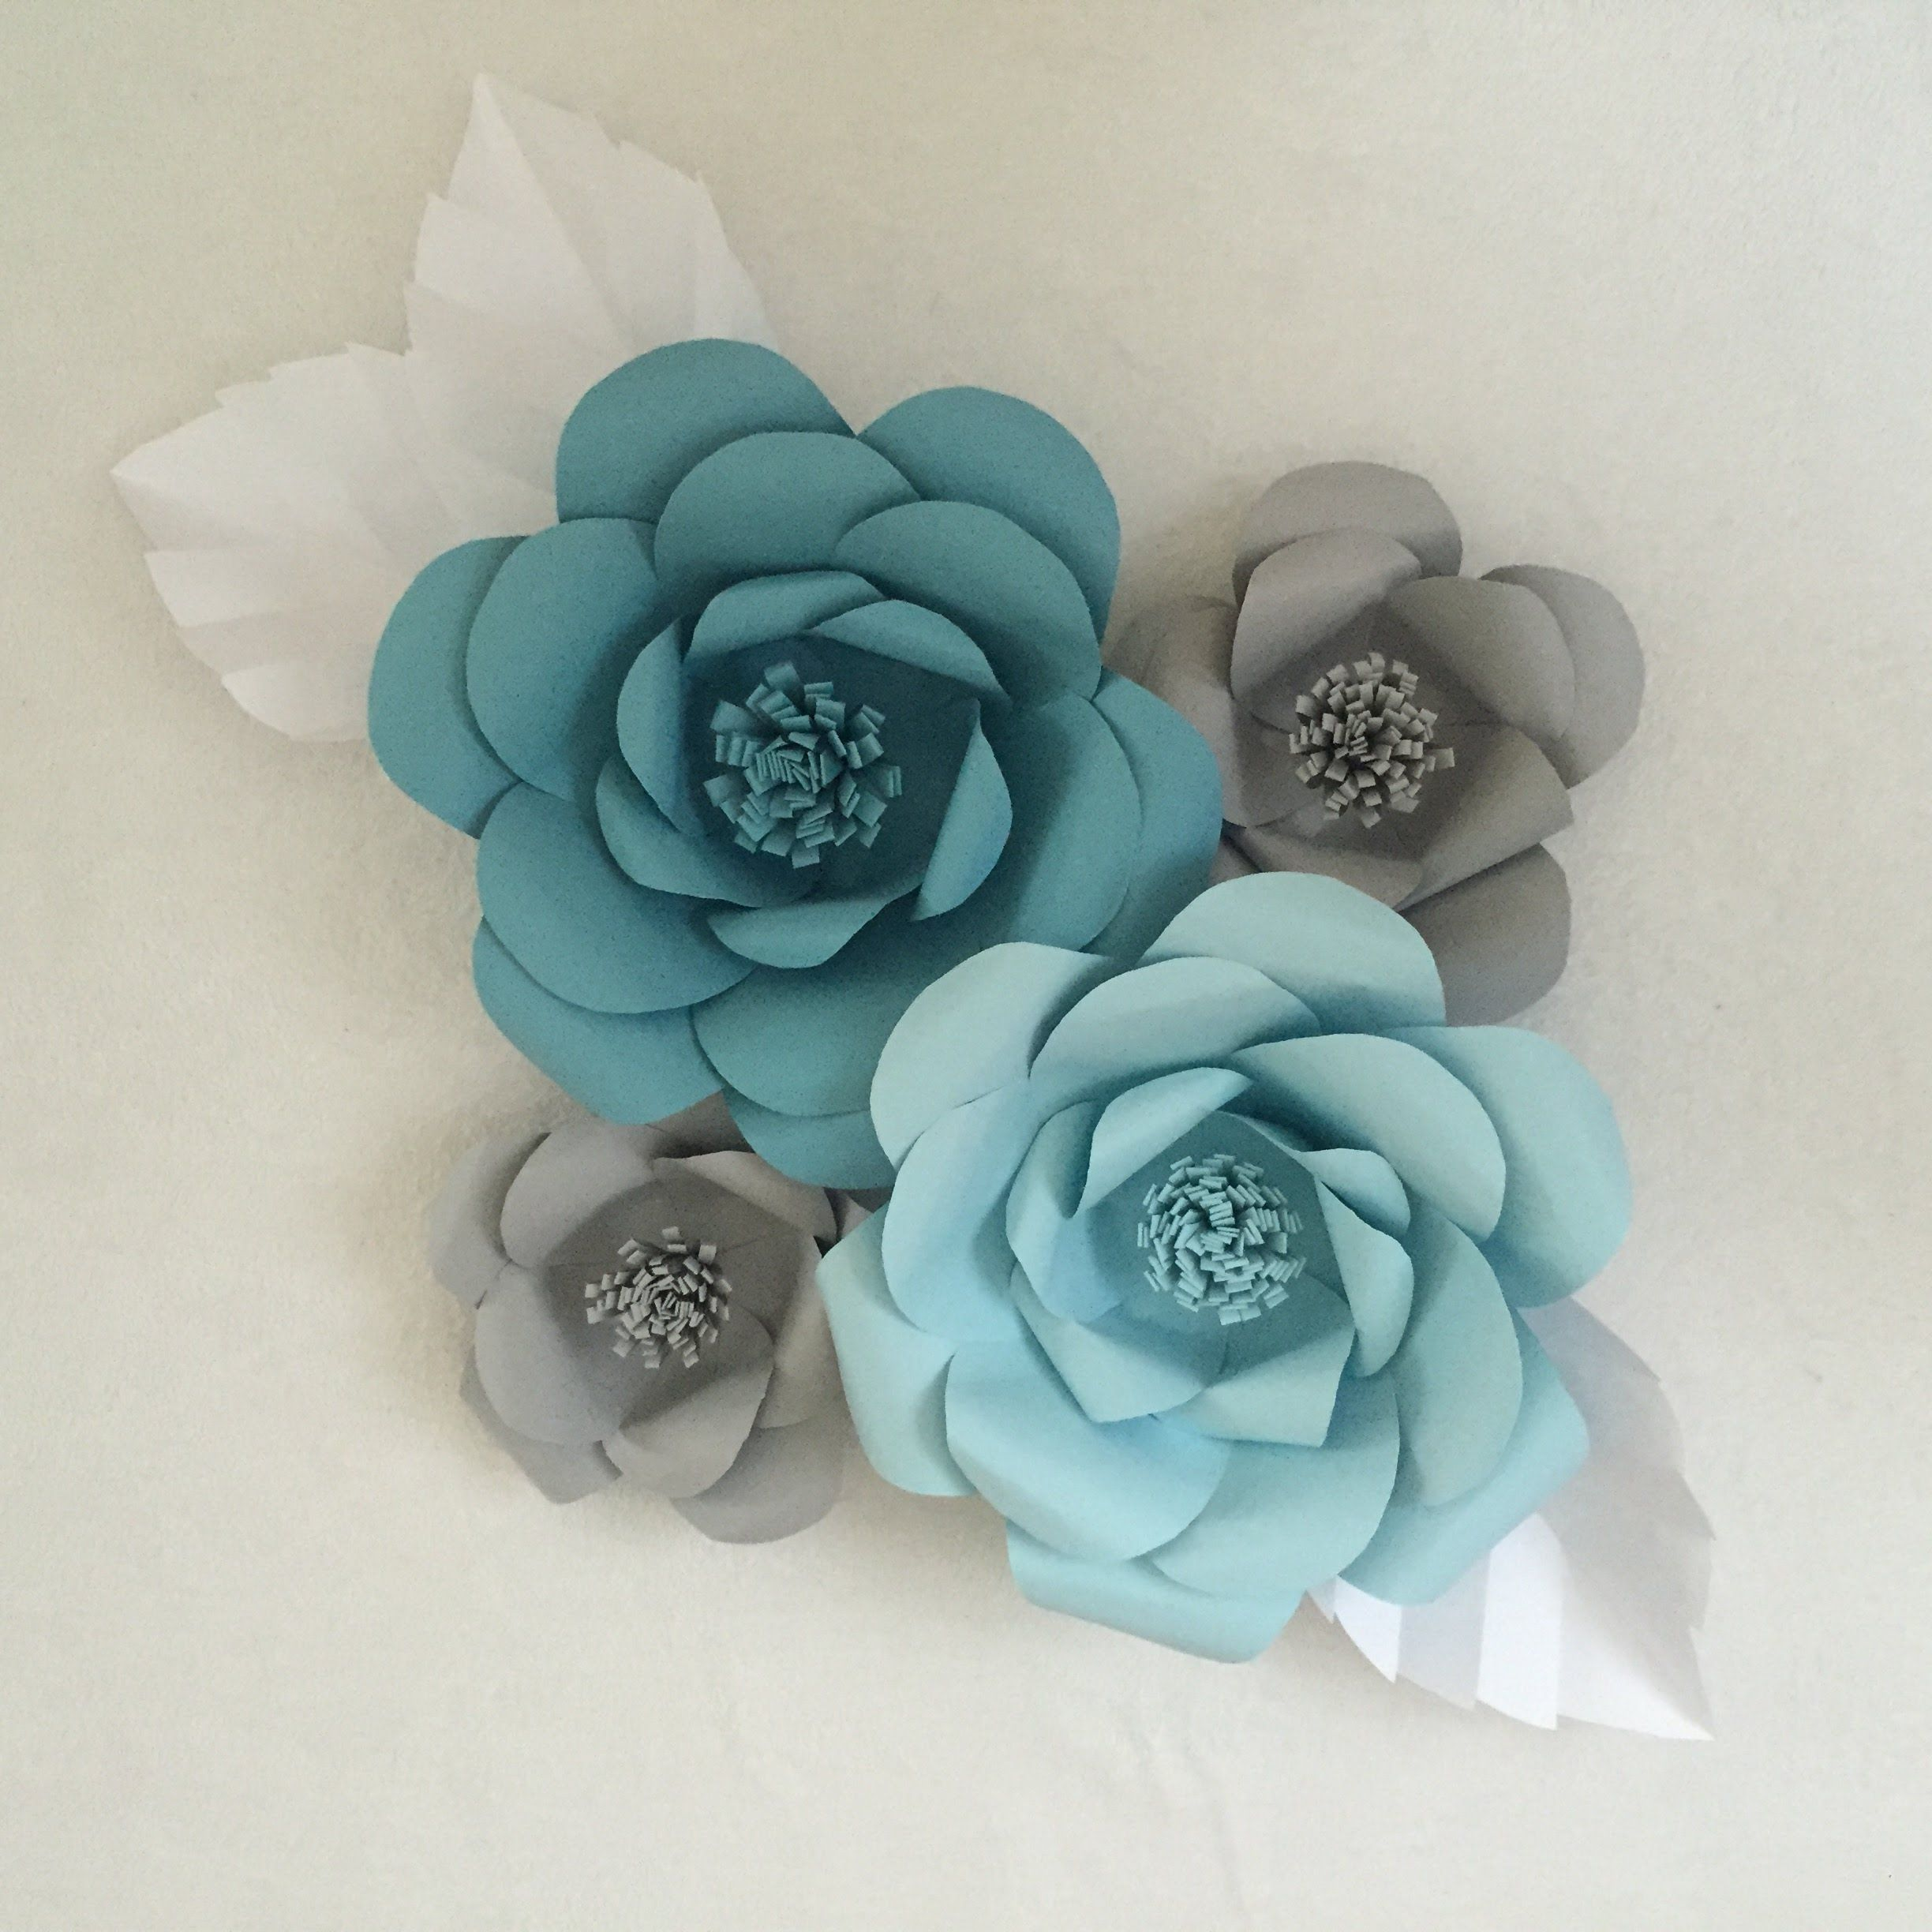 Pin by Linda Dudzik on Crafts  Paper  Pinterest  Paper flower